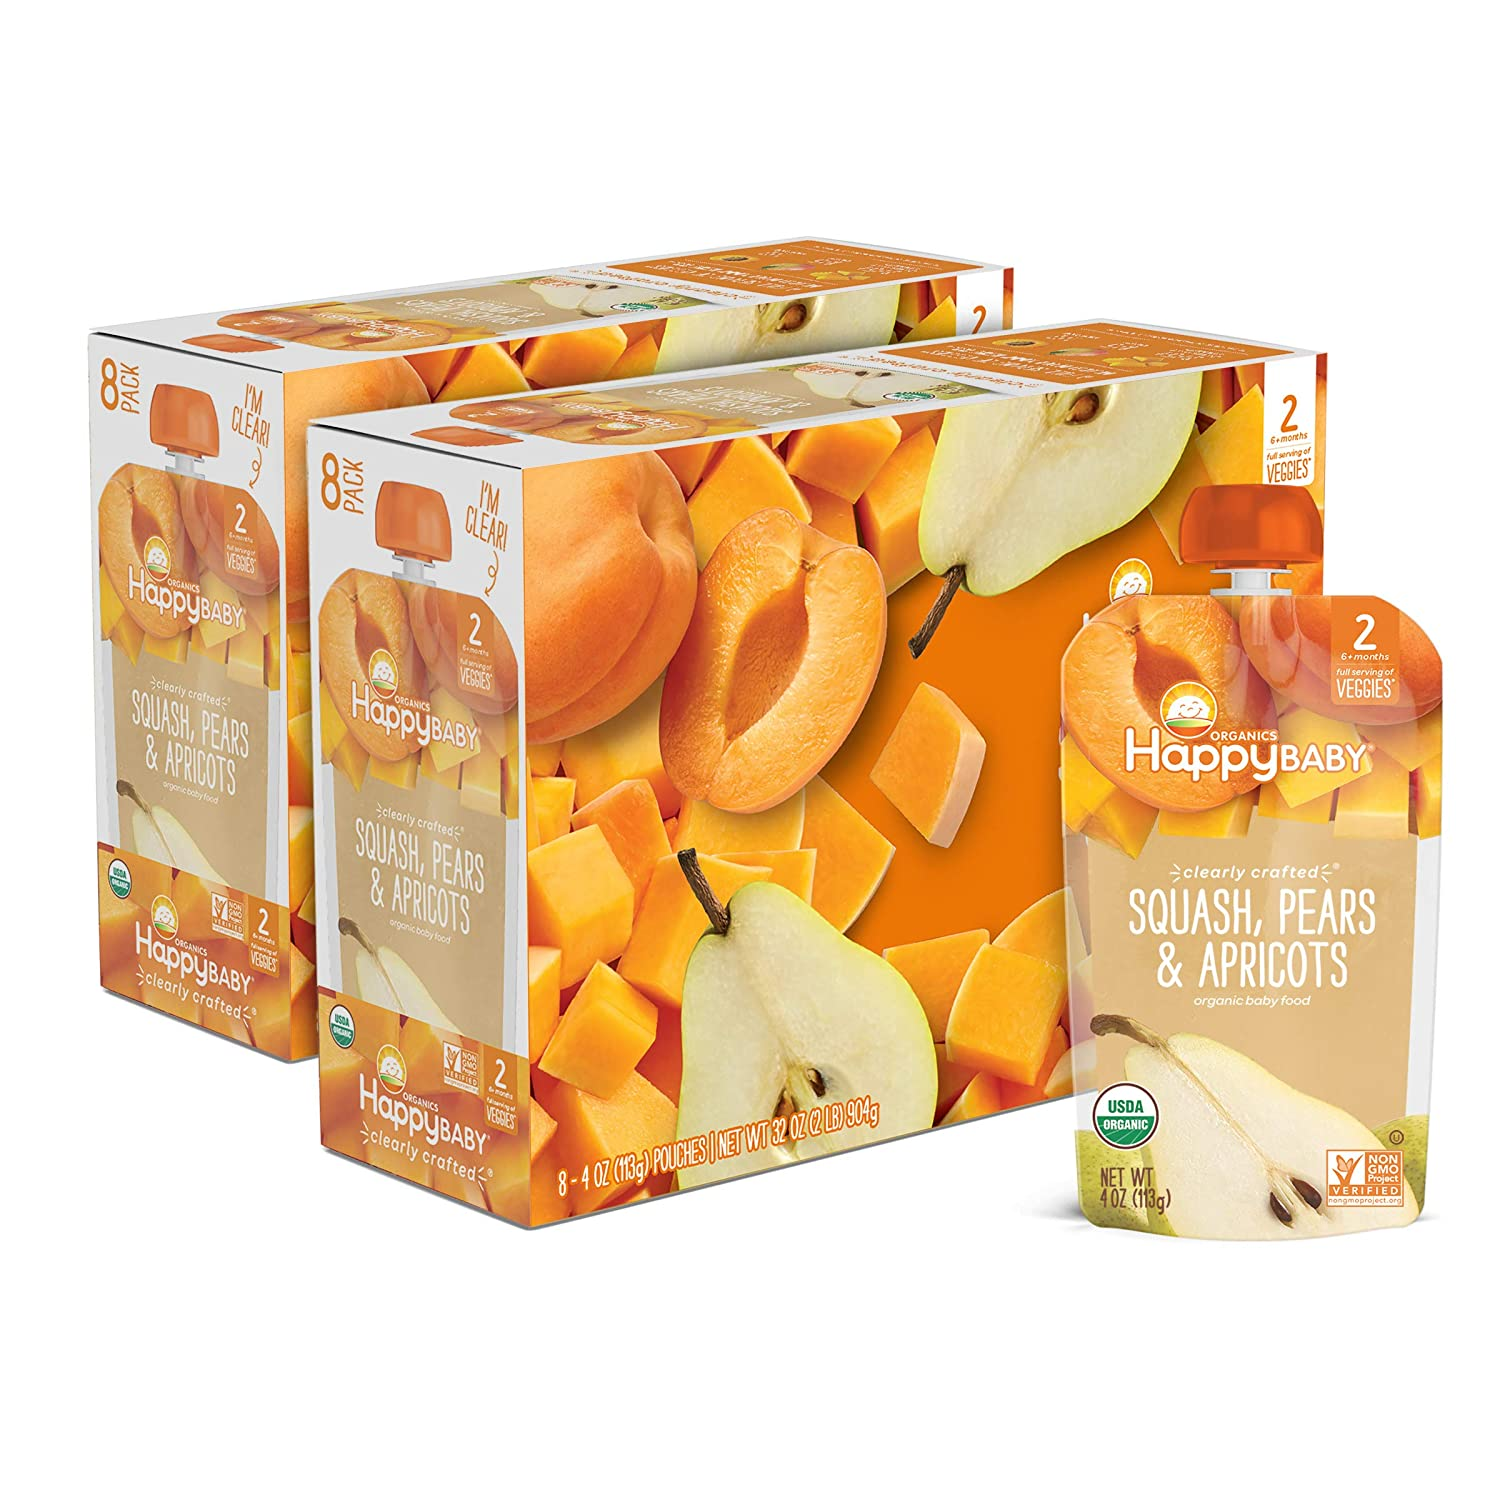 Happy Baby Organics Clearly Crafted Stage 2, Squash, Pears & Apricots, 4 Oz Pouch, 16Count